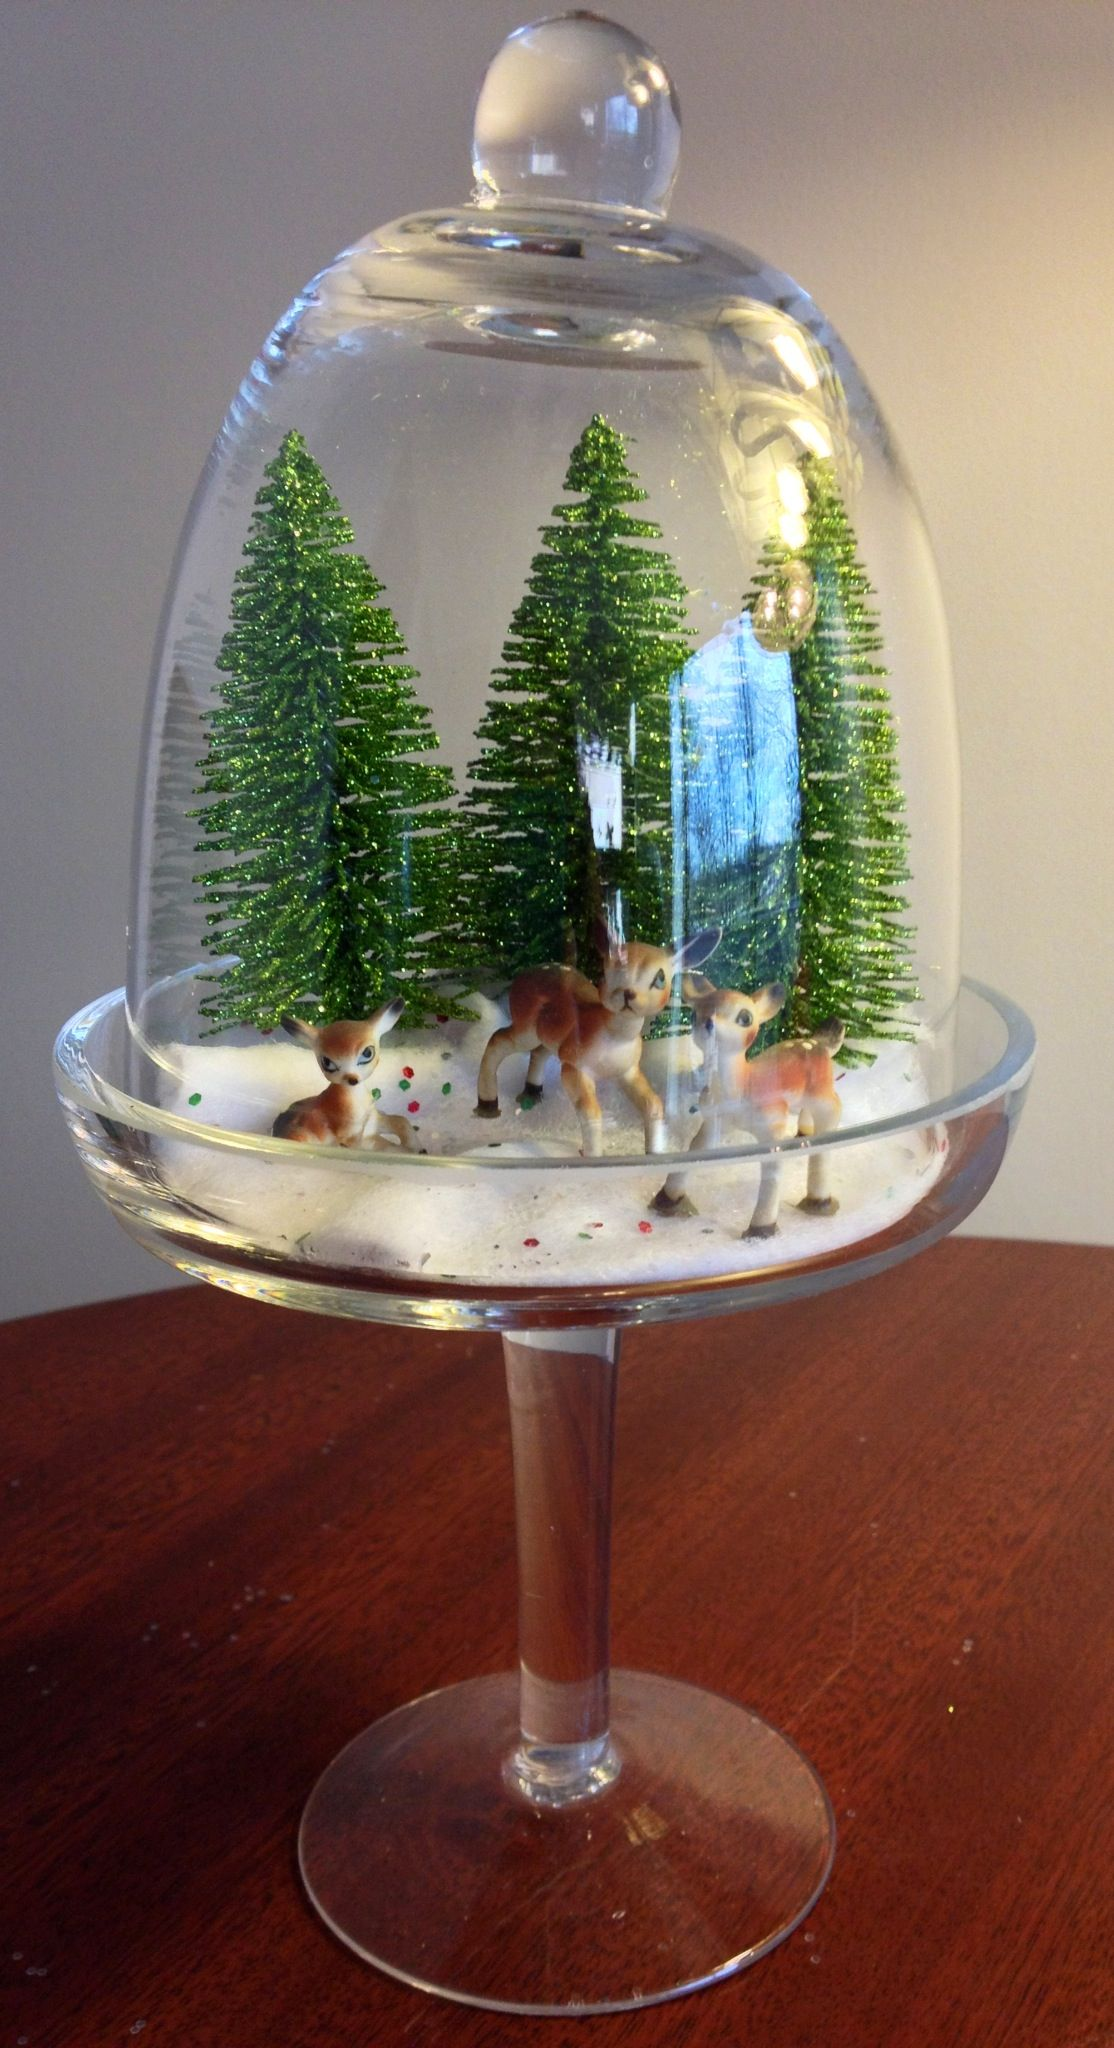 My retro Christmas mini diorama. Glass cupcake dome from TJ Maxx ...